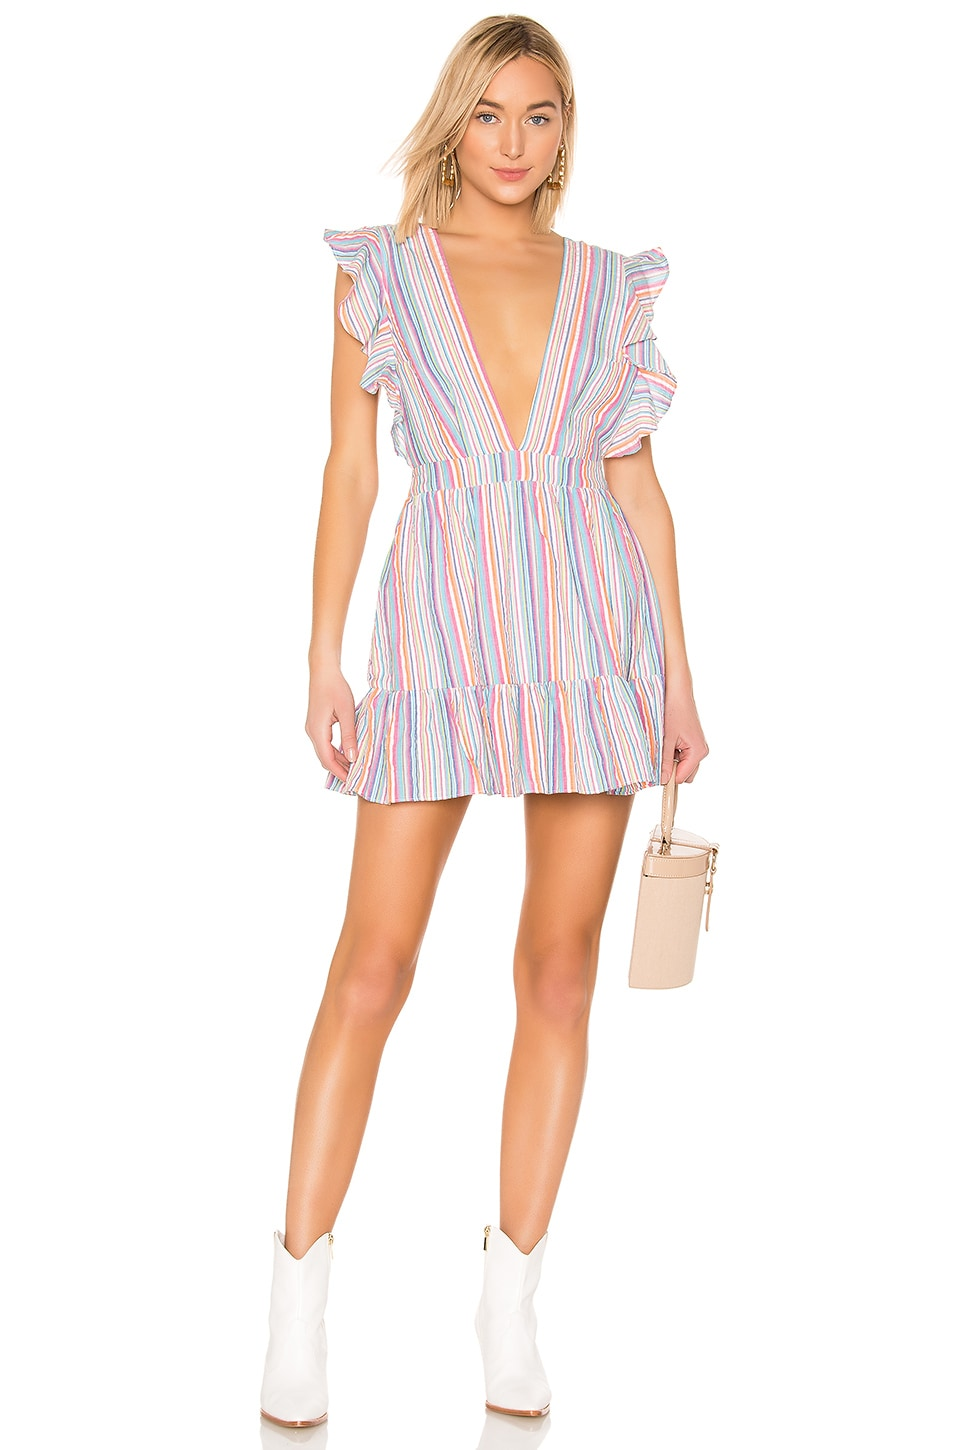 MAJORELLE Costello Mini Dress in Rainbow Stripe